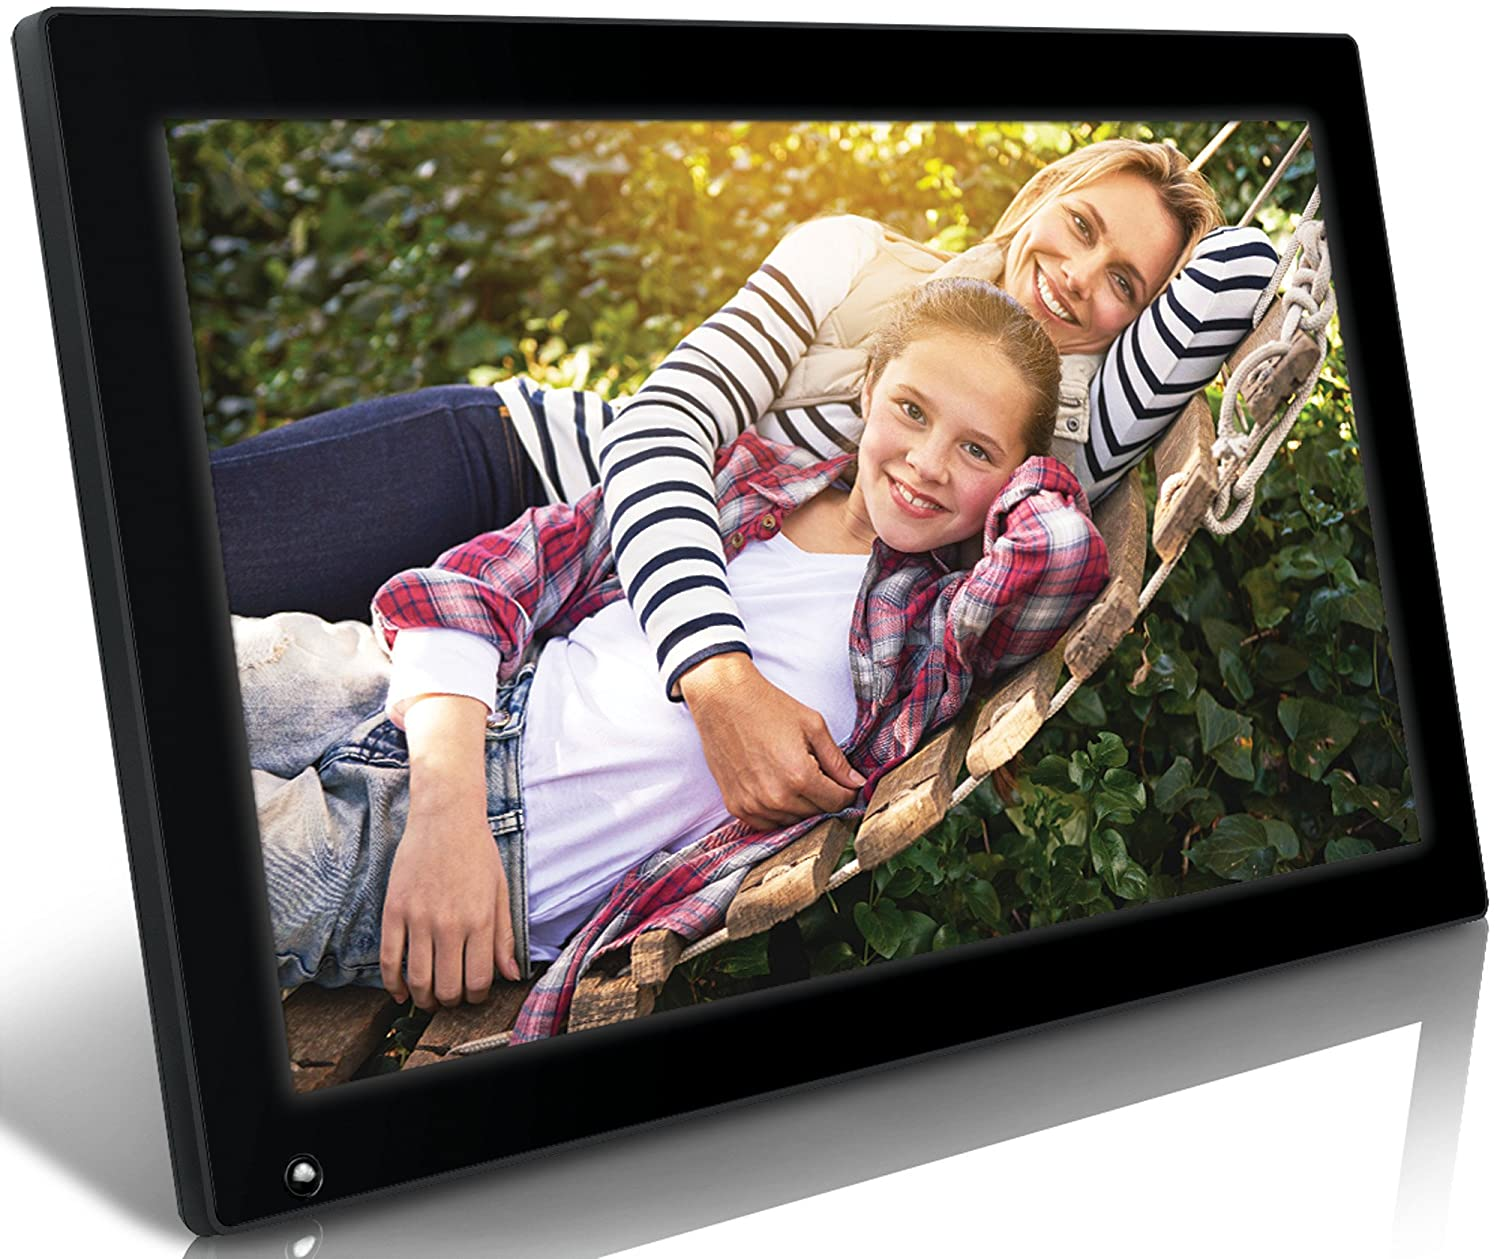 Amazon nixplay original 185 inch wifi cloud digital photo amazon nixplay original 185 inch wifi cloud digital photo frame iphone android app email facebook dropbox instagram picasa w18a camera jeuxipadfo Gallery